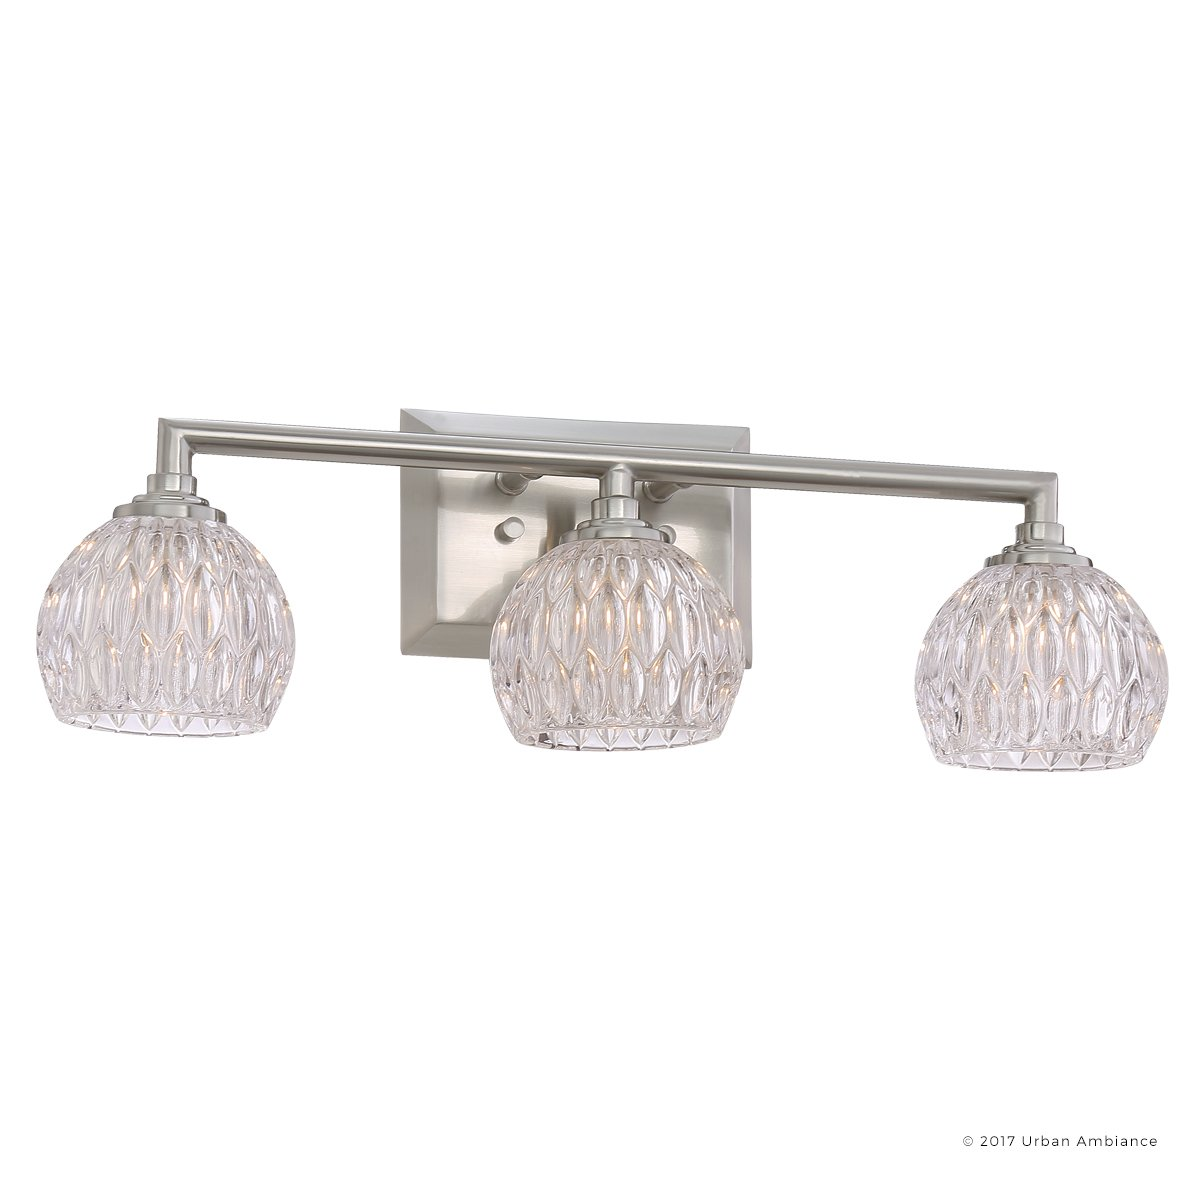 Luxury Crystal LED Bathroom Vanity Light, Medium Size: 6.25''H x 20''W, with Classic Style Elements, Brushed Nickel Finish and Marquis Cut Glass Shades, G9 LED Technology, UQL2621 by Urban Ambiance by Urban Ambiance (Image #1)